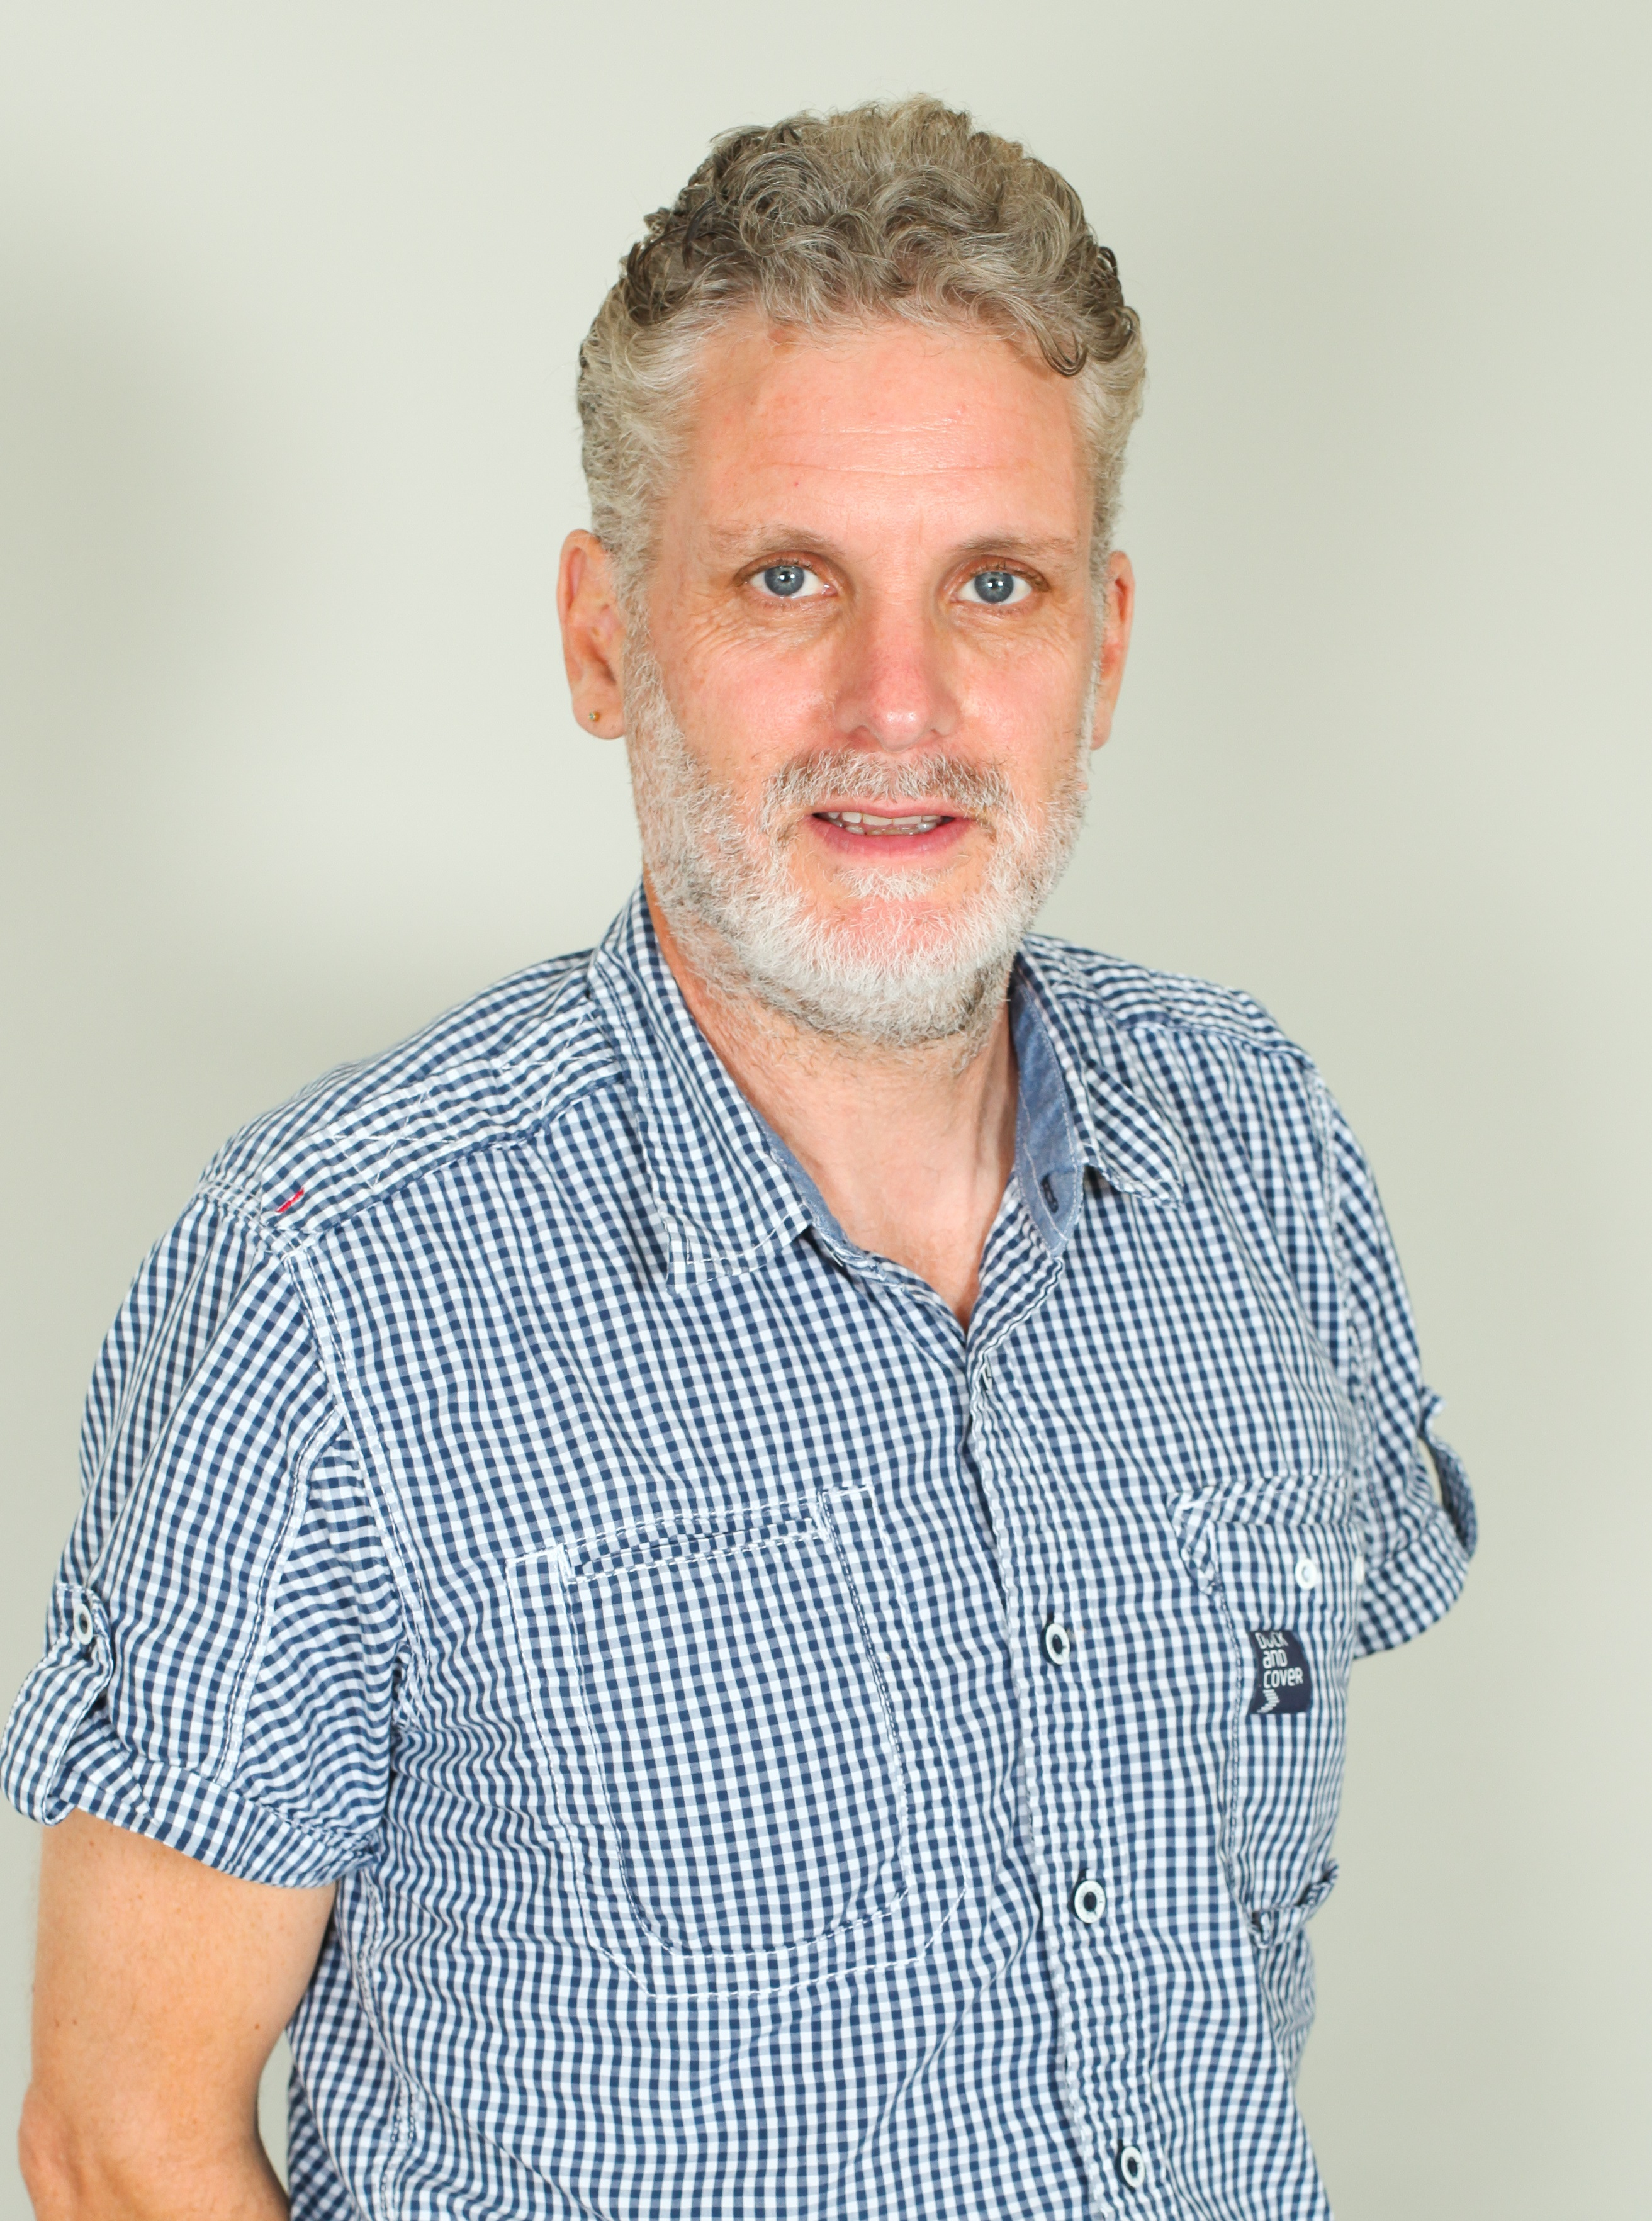 profile image of Paul Tomkinson